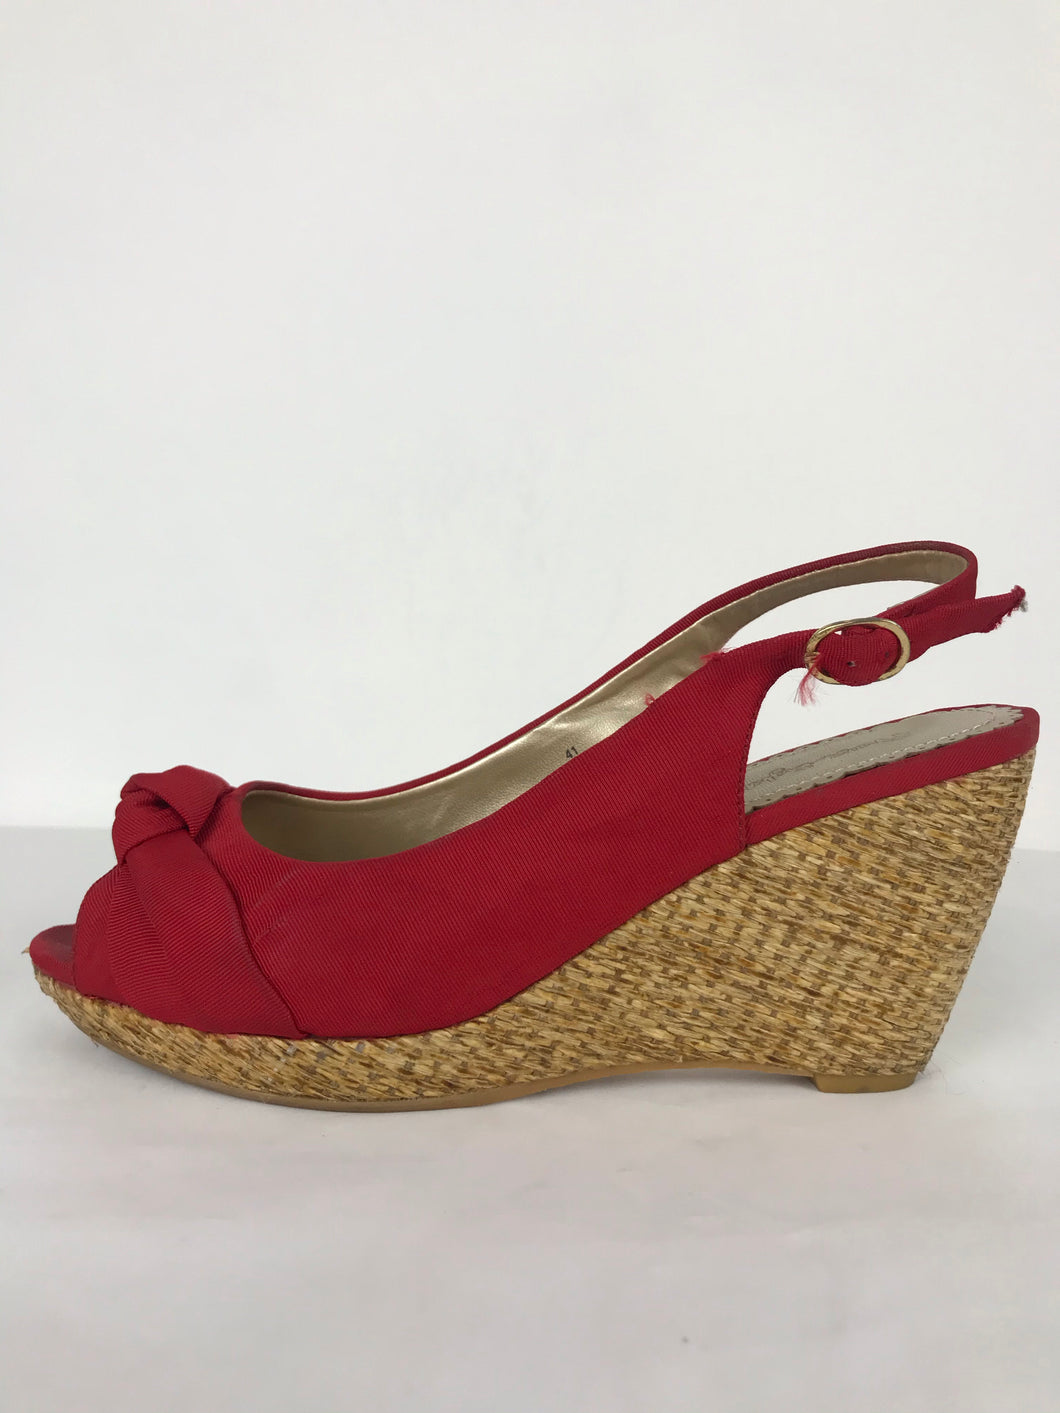 Phase Eight Womens Peep Toe Wedges | UK7.5 EU40 | Red